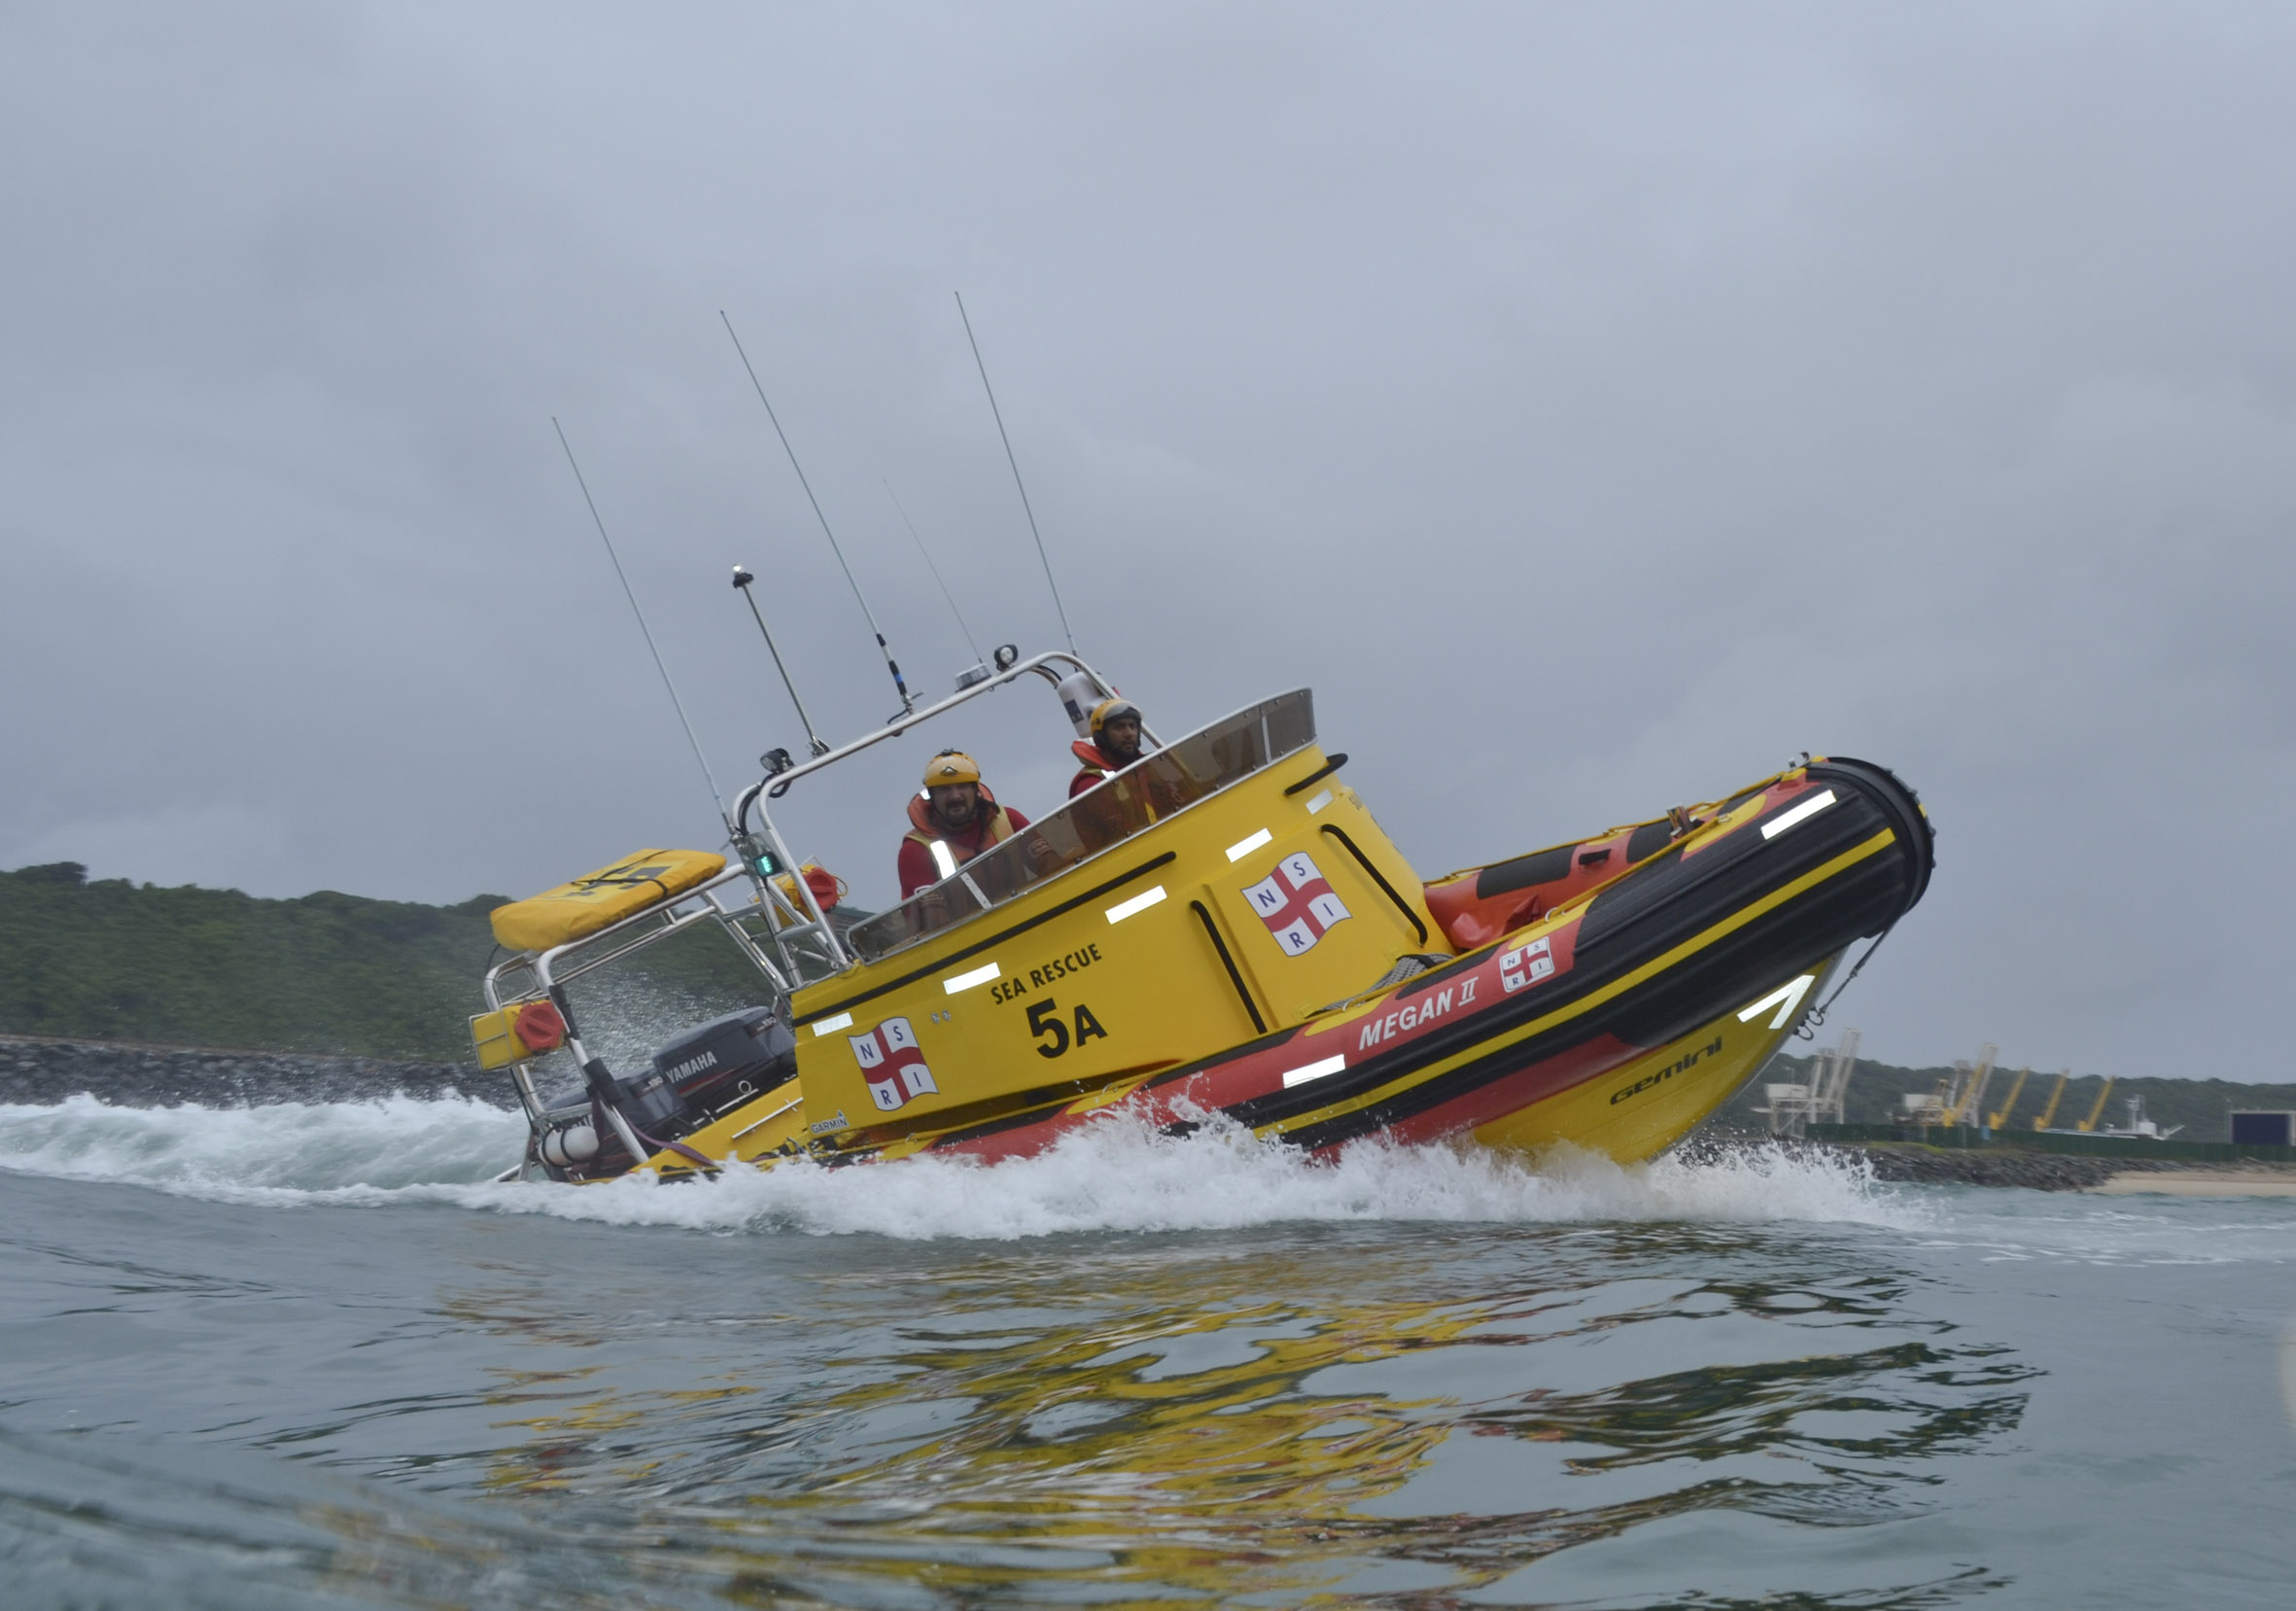 The Durban rescue boat Megan II ran 25 miles down to the search area for the missing divers.